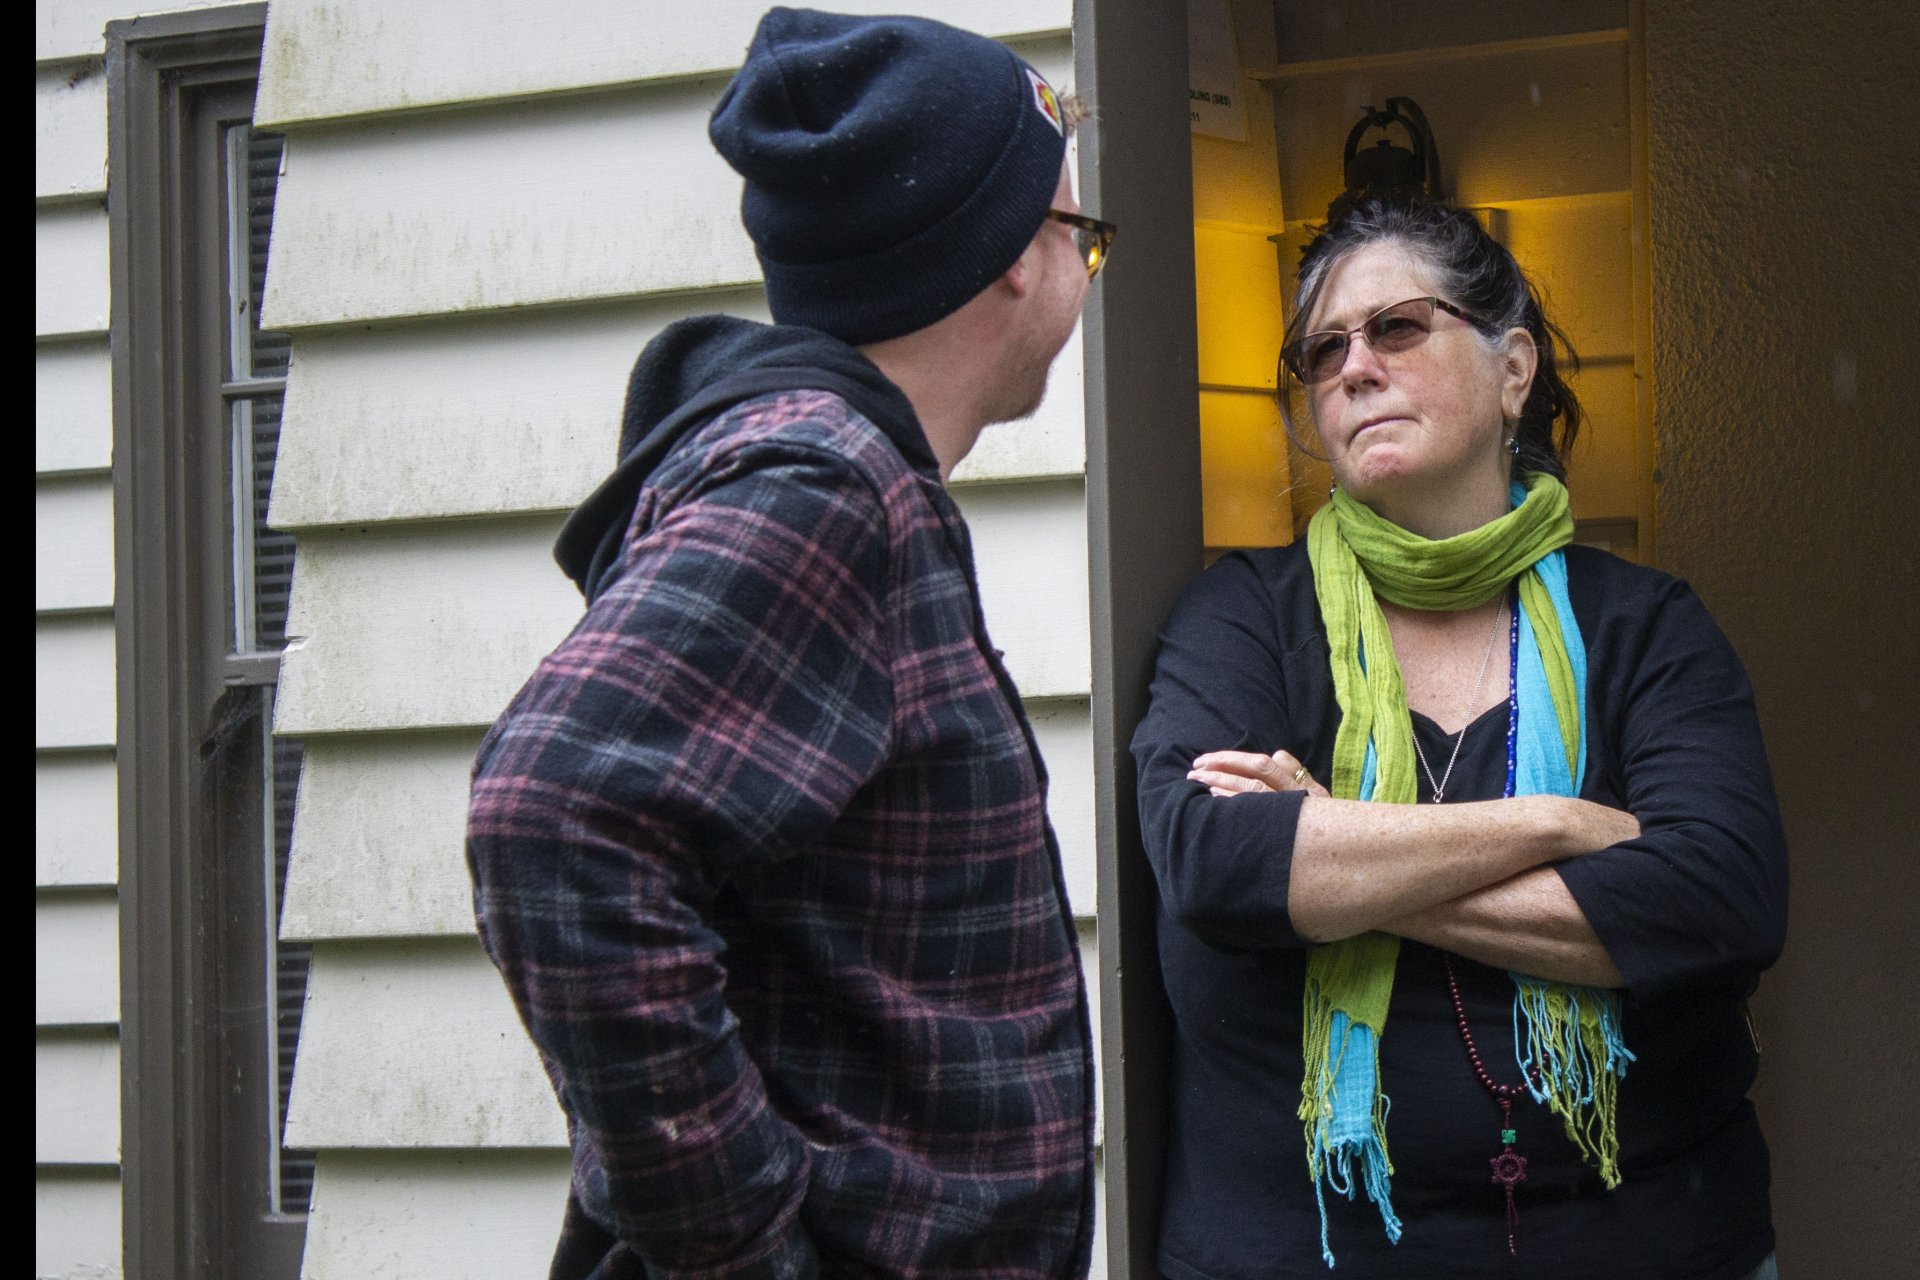 Danielle Orr who has volunteered at KHSU for 39 years talks with former paid intern Damien Jimenez outside of Feuerwerker House where the KHSU station has been based on the HSU campus on April 11, 2019. | Photo by Thomas Lal